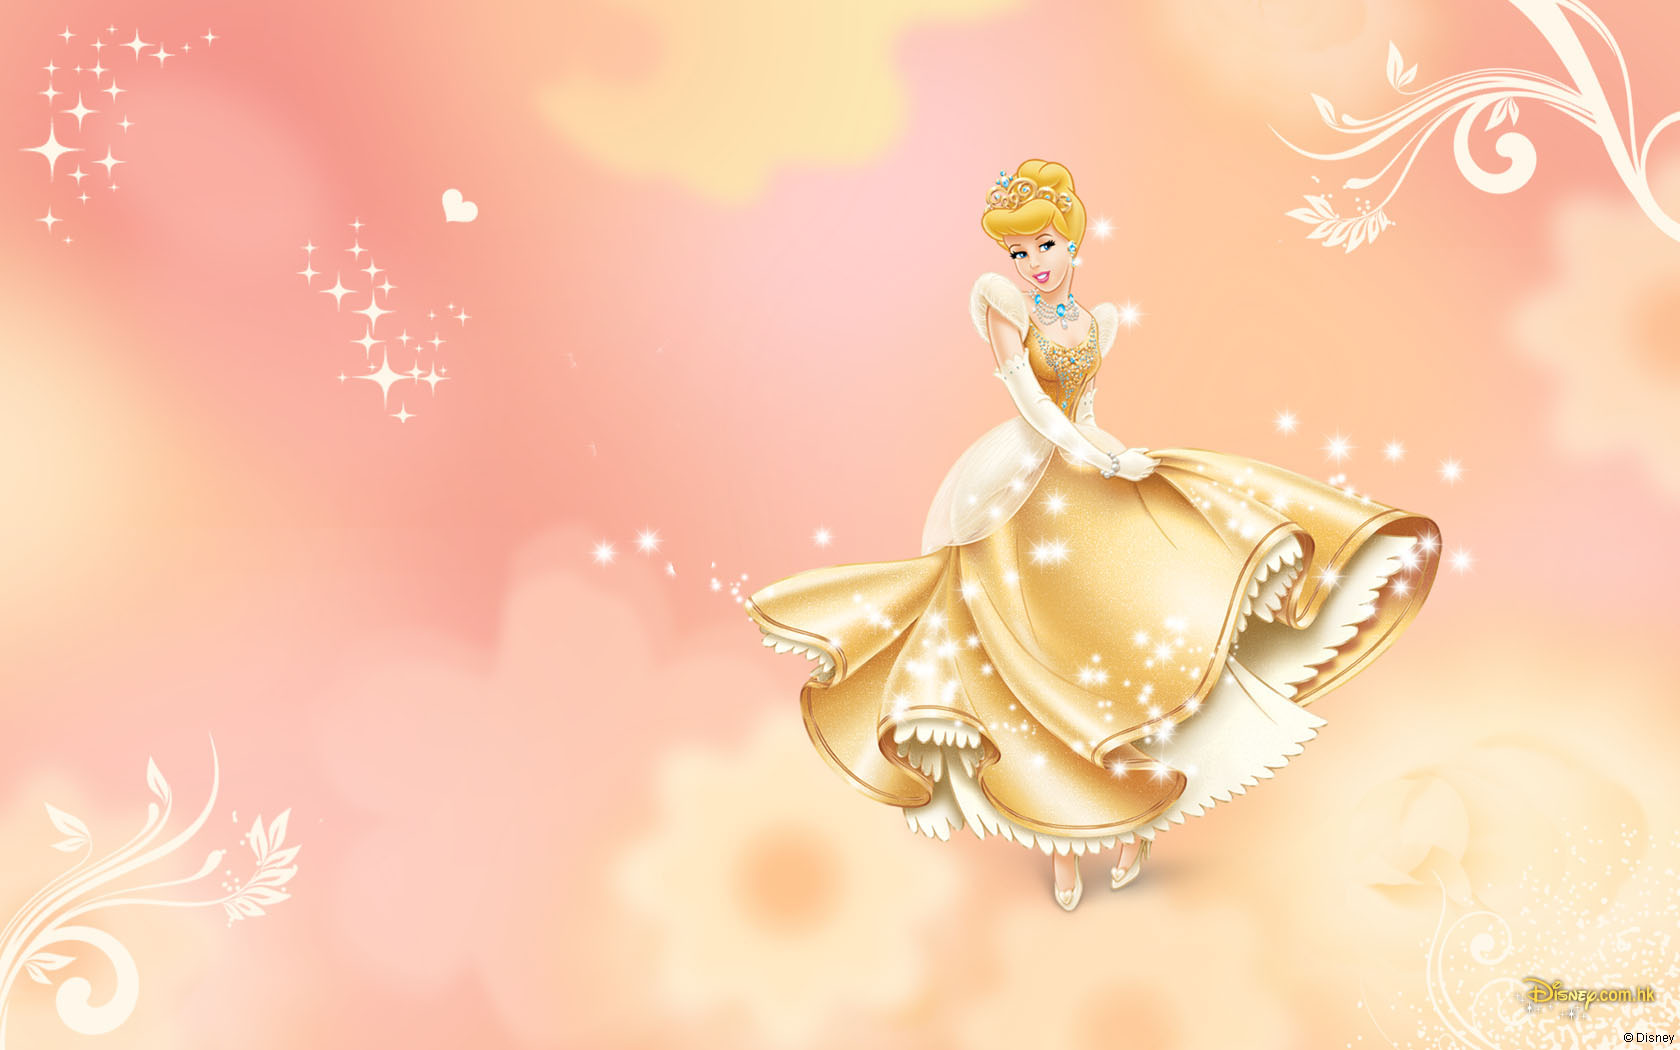 Disney Princess 24789